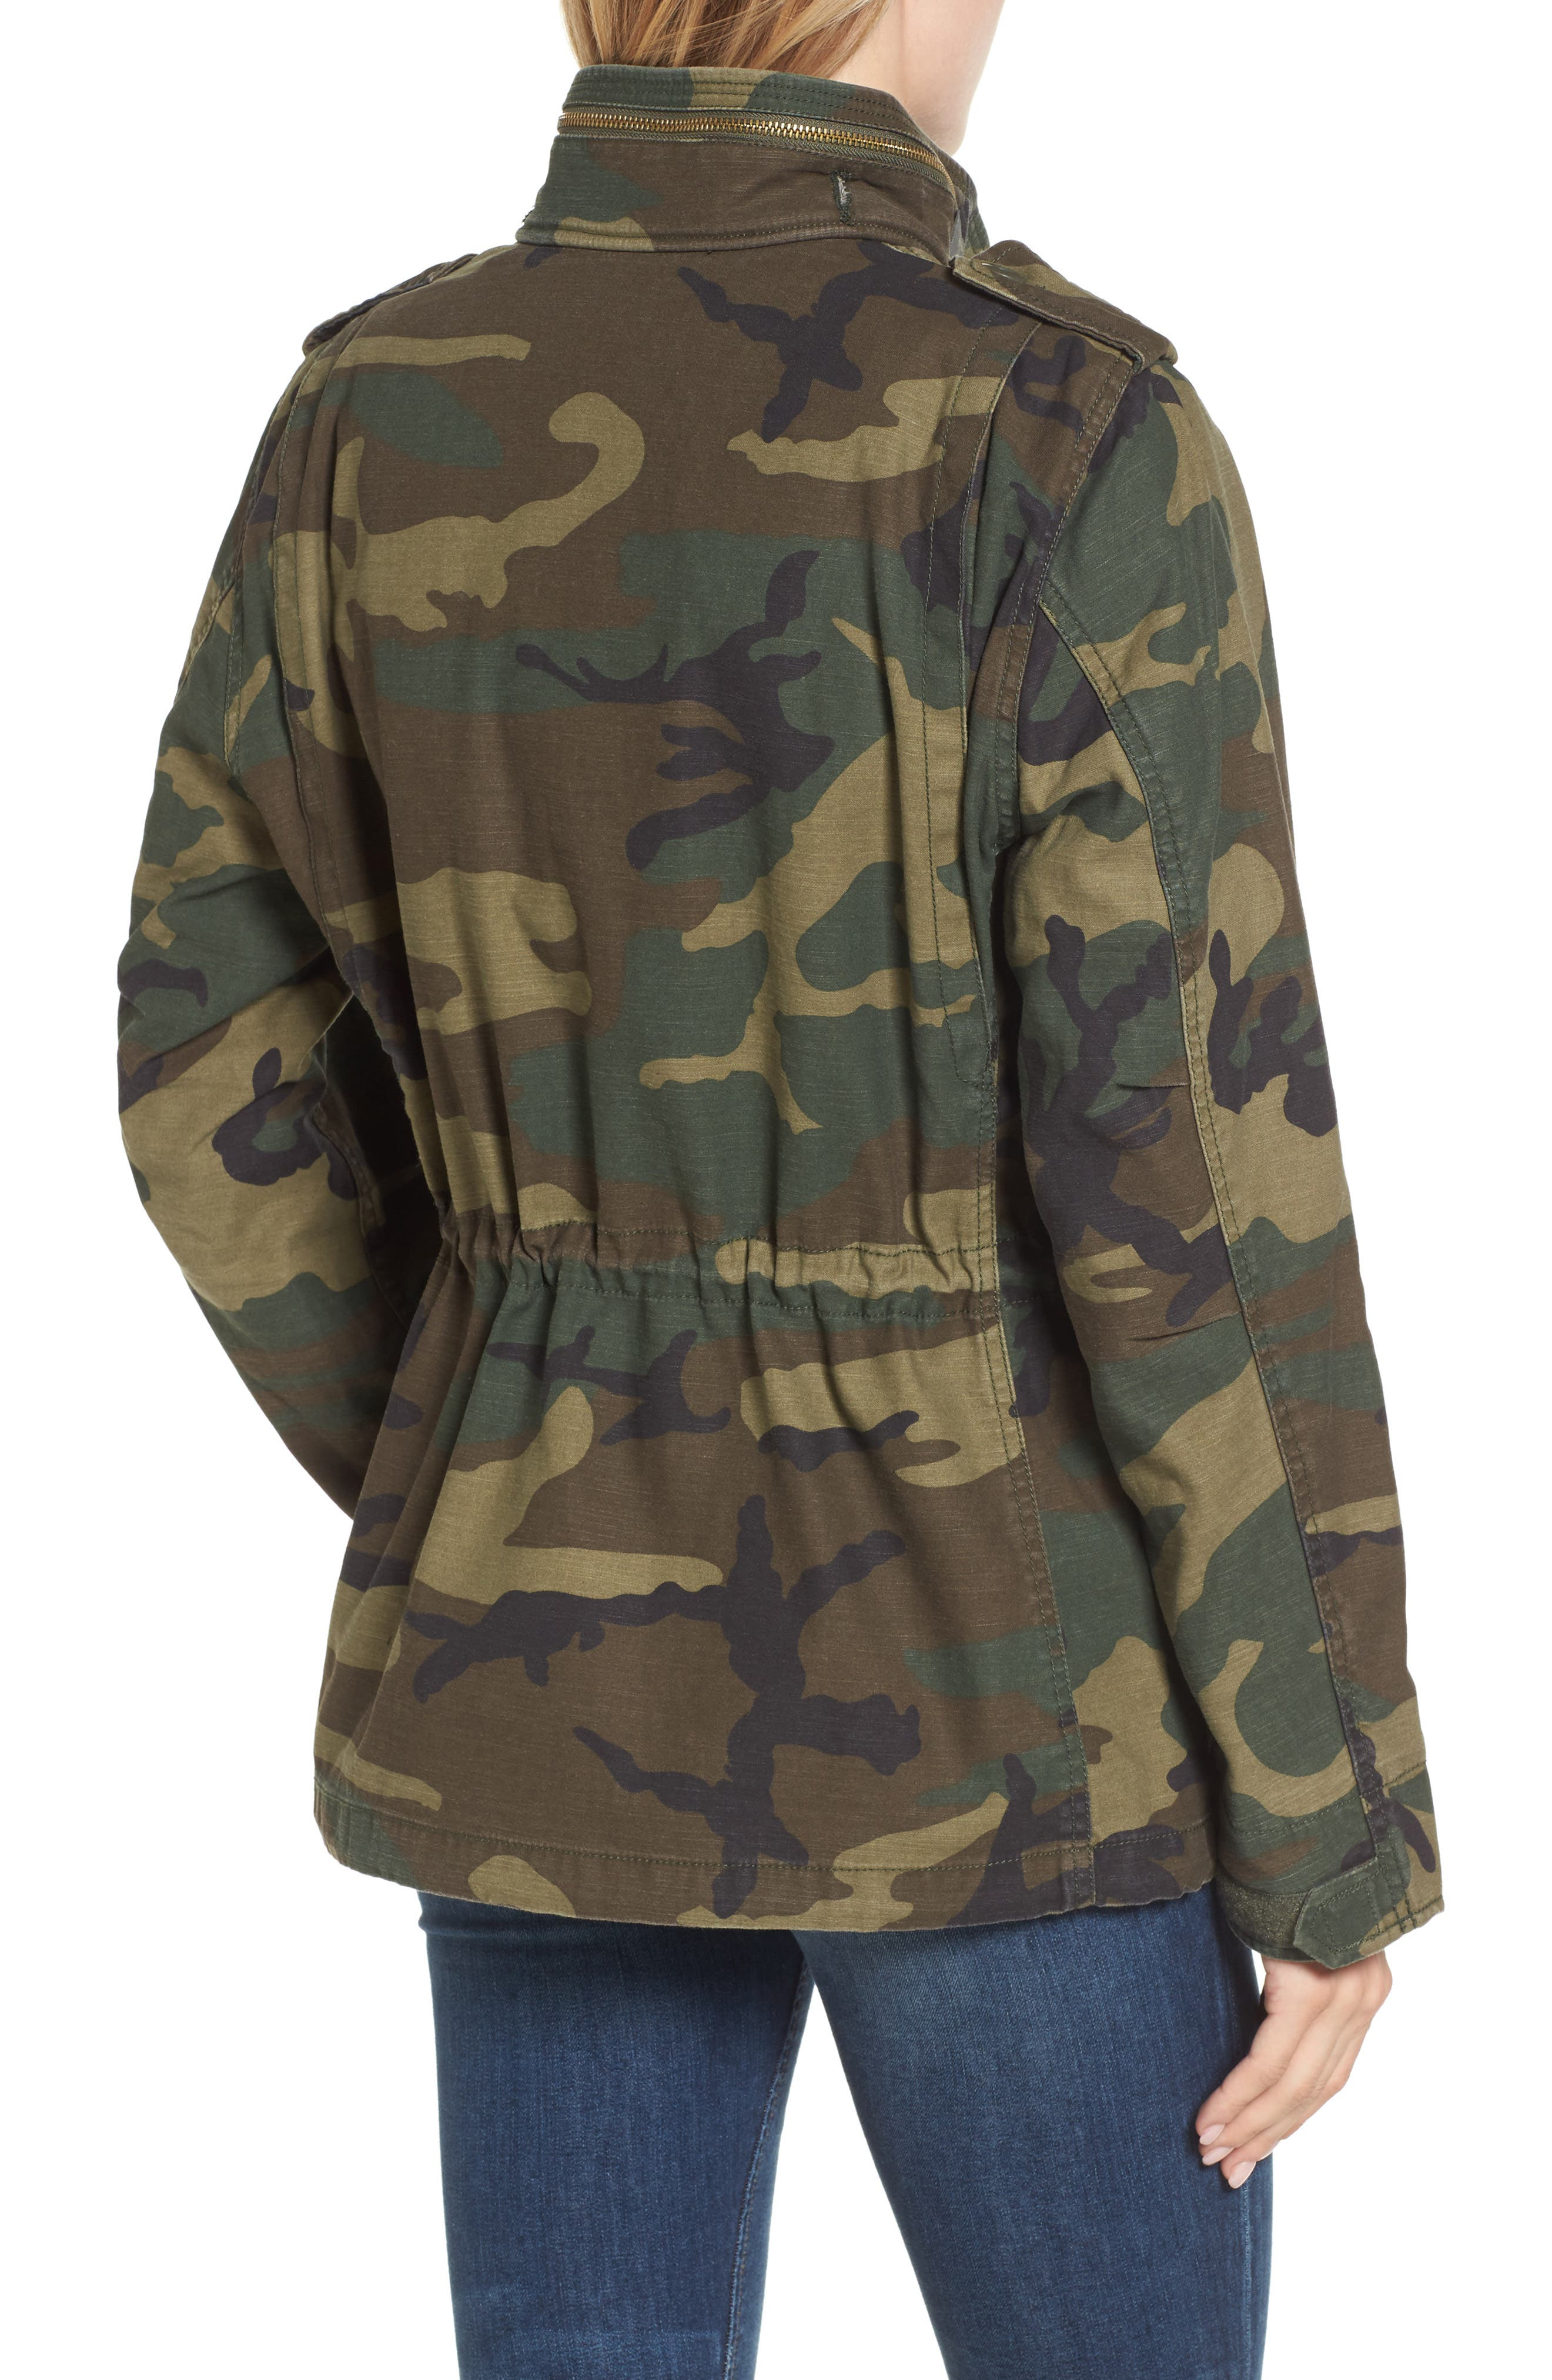 M-65 Defender Camo Field Jacket,                             Alternate thumbnail 2, color,                             WOODLAND CAMO